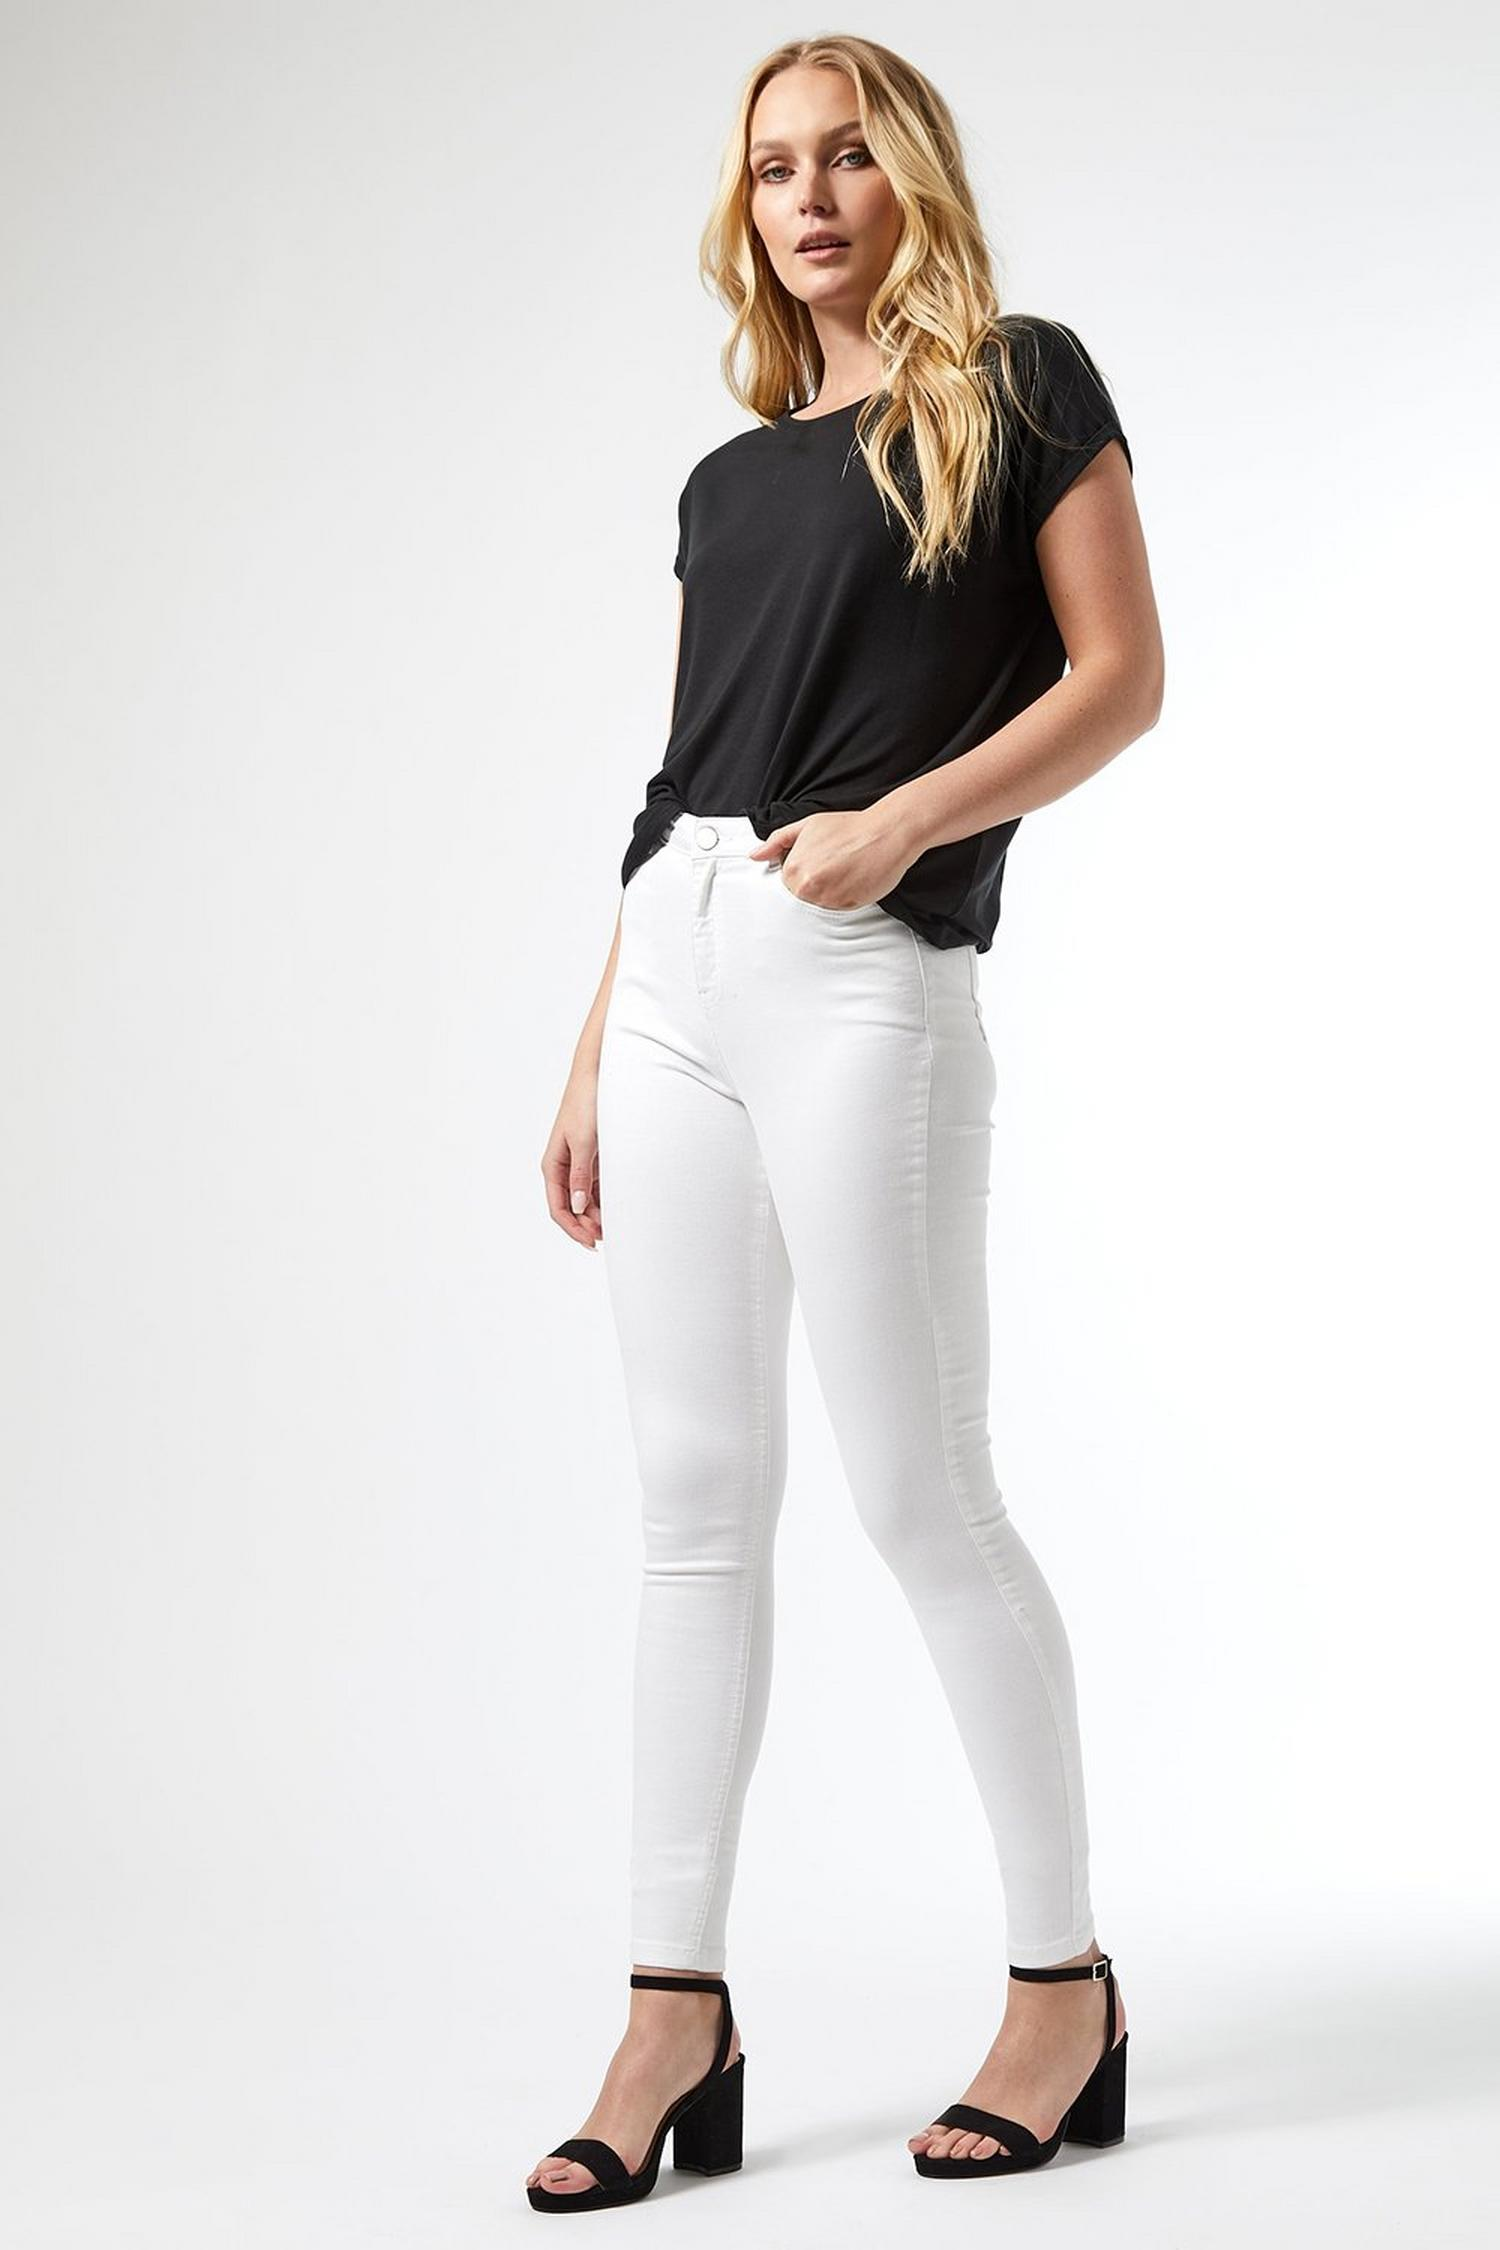 173 Tall White Shape and Lift Denim Jeans image number 2